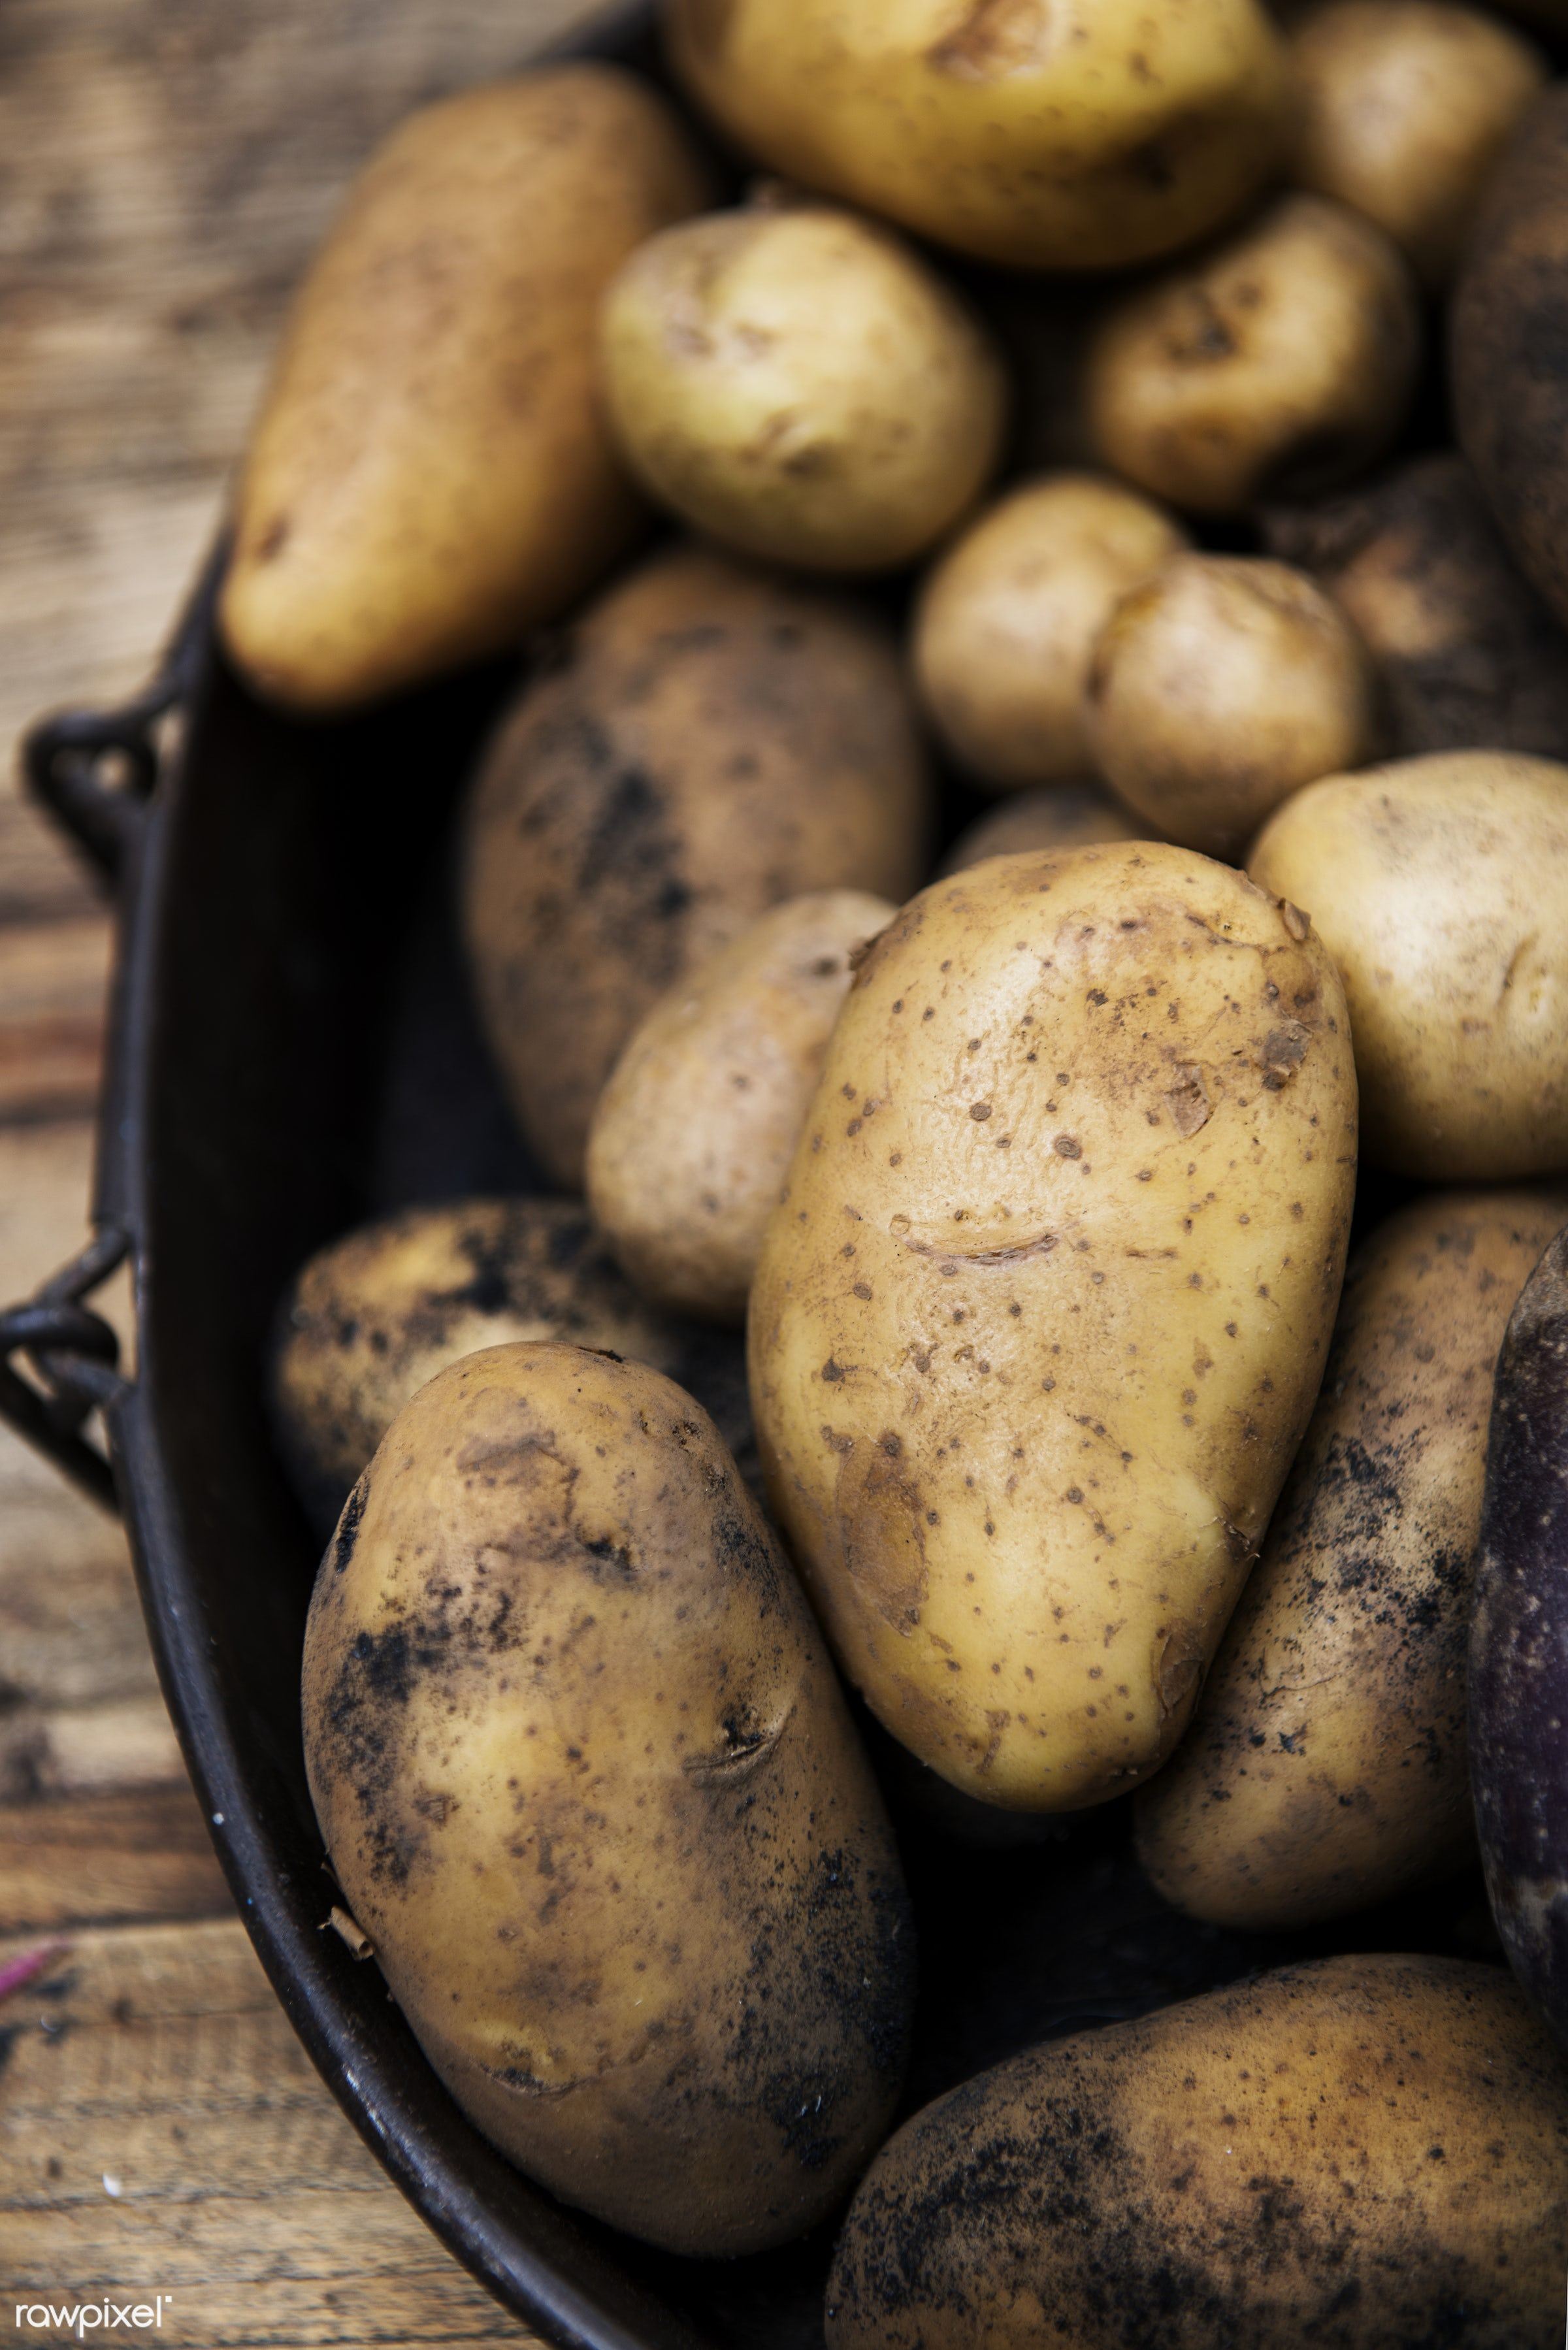 raw, nobody, agriculture, ingredients, farm, organic, nature, fresh, food, healthy, potato, harvest, vegetable, products,...